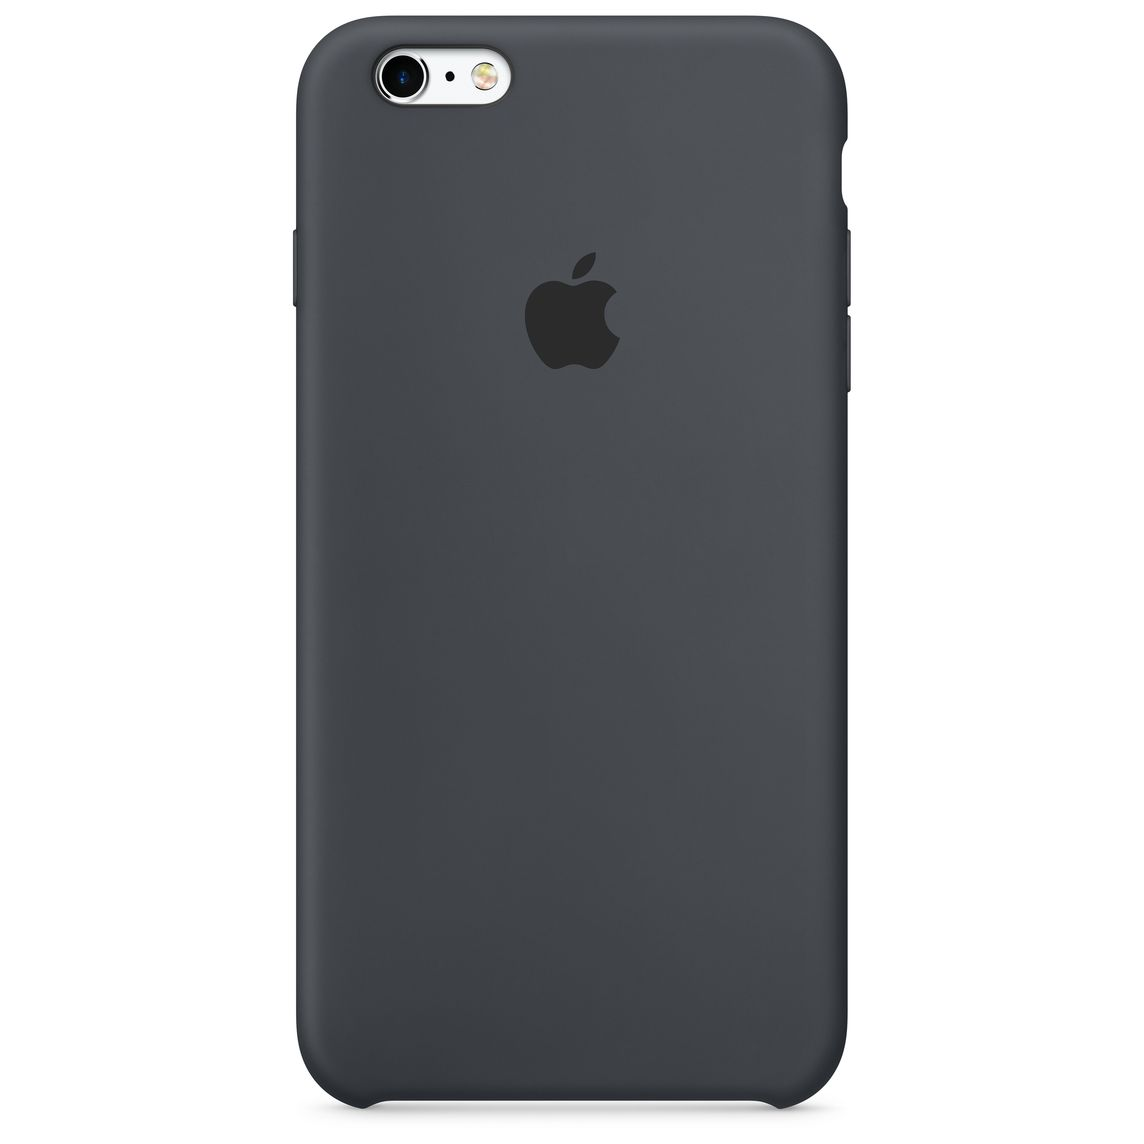 best website 71643 15dbb iPhone 6 Plus / 6s Plus Silicone Case - Charcoal Gray